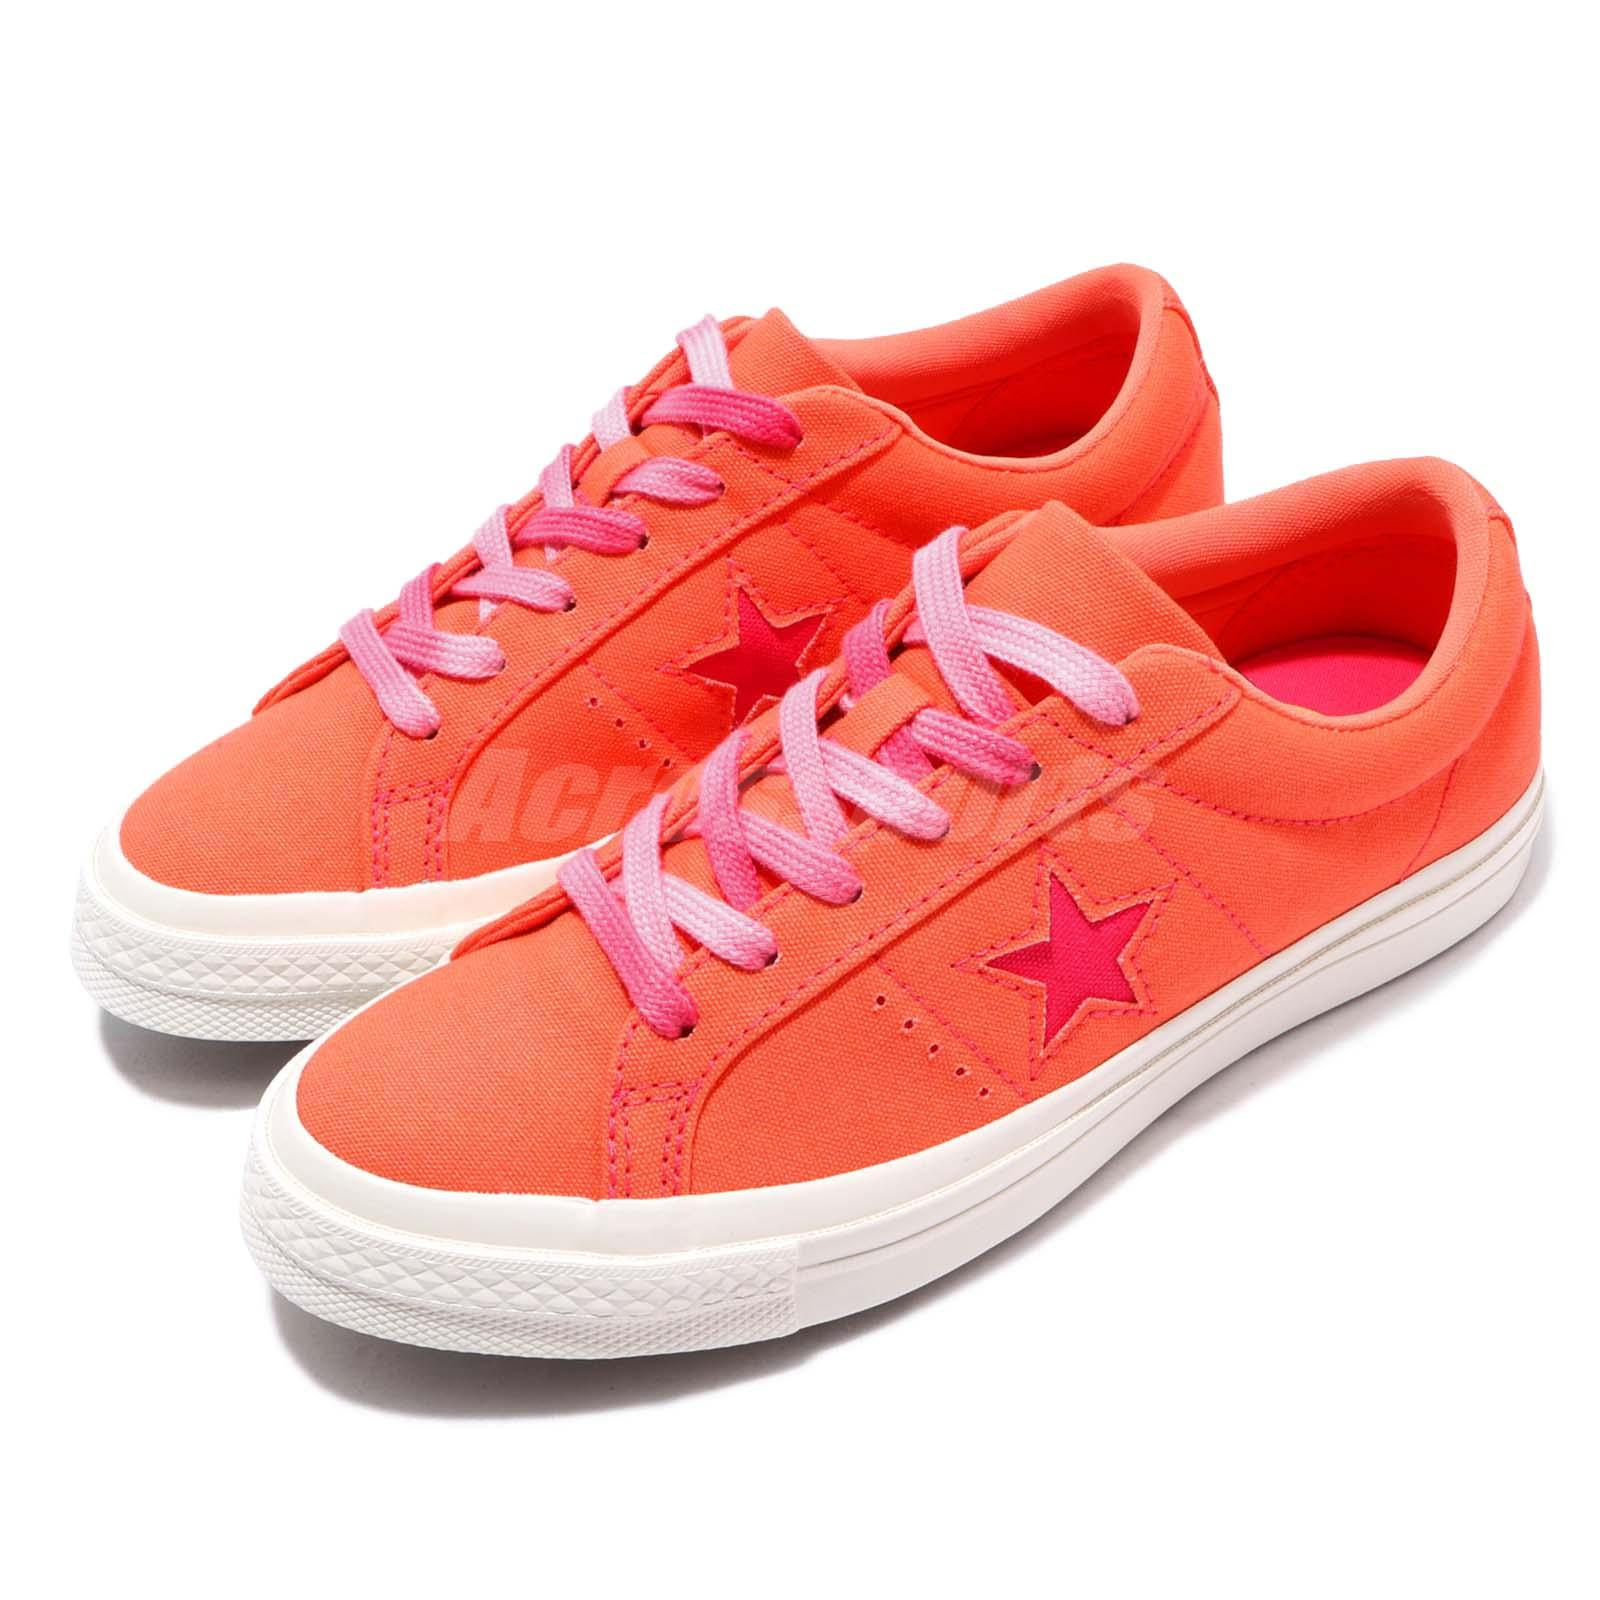 100% quality best service hot sales Details about Converse One Star OX Sunbaked Orange Pink Gum Women Casual  Shoes Sneaker 564152C